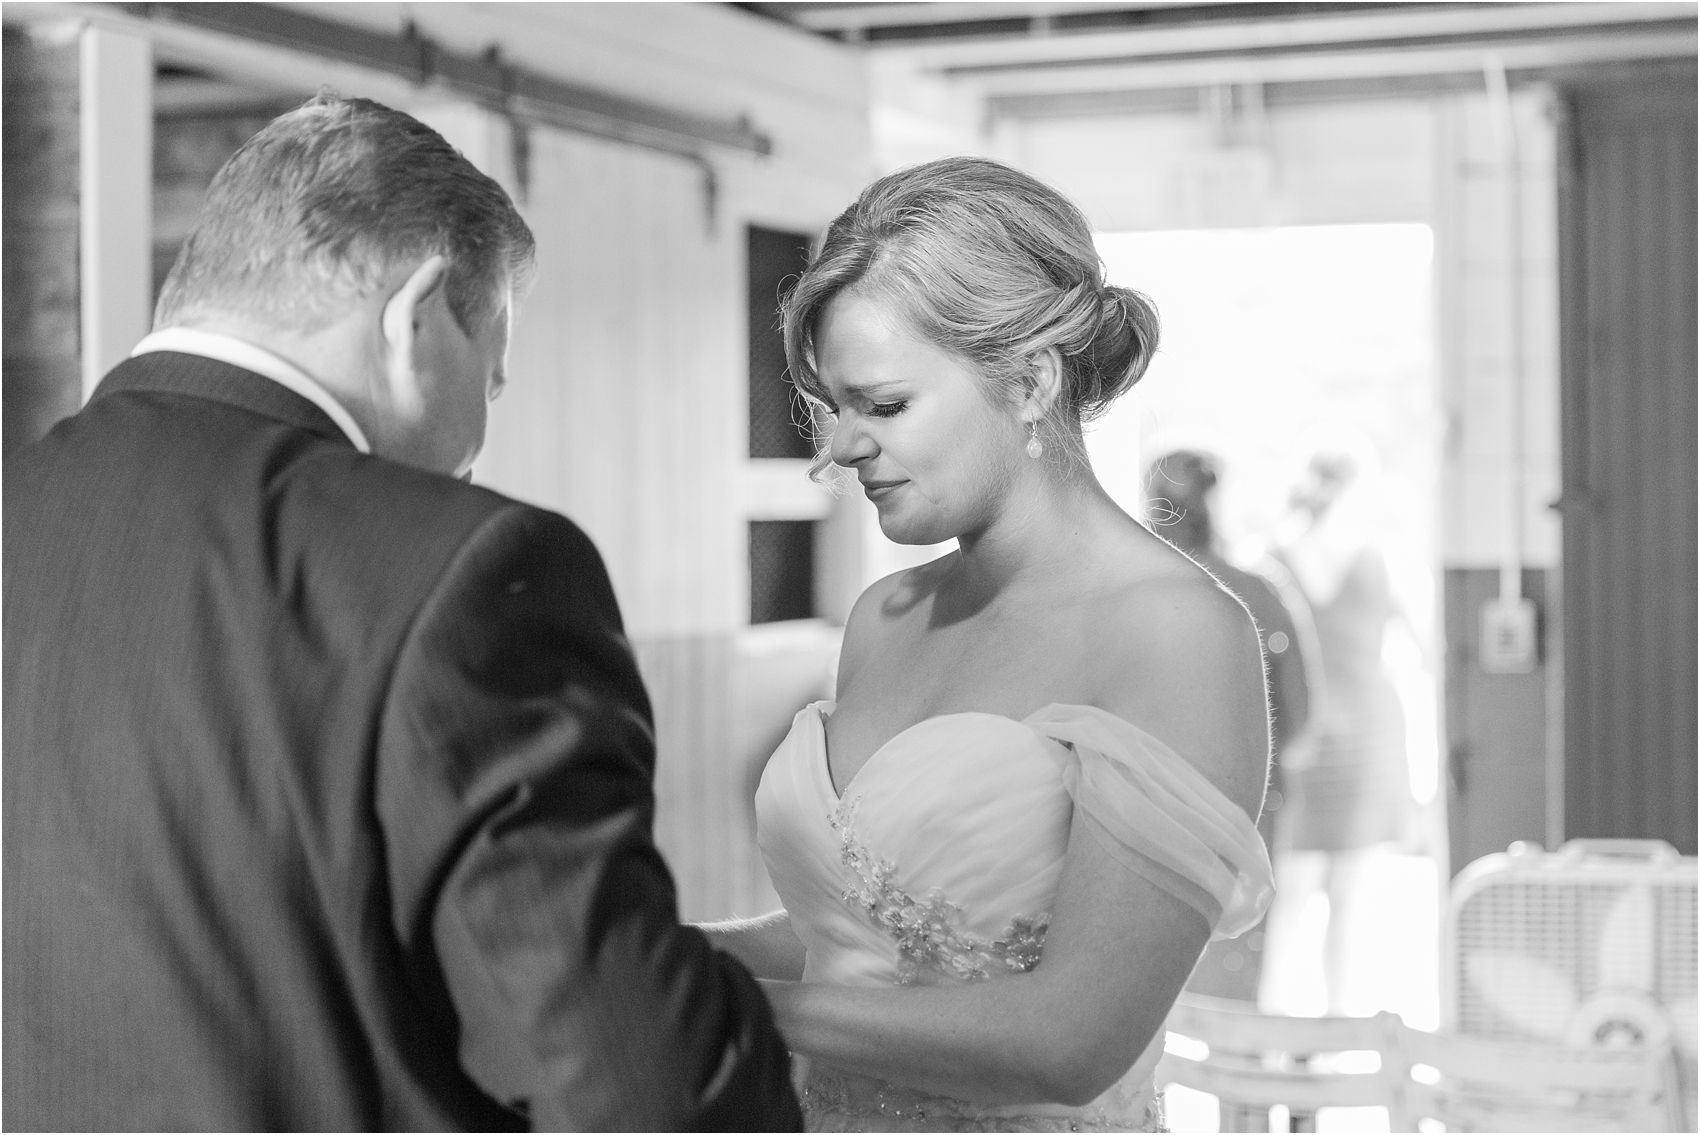 father-and-bride-share-emotional-first-look-on-wedding-day-photos-in-detroit-michigan-by-courtney-carolyn-photography_0044.jpg